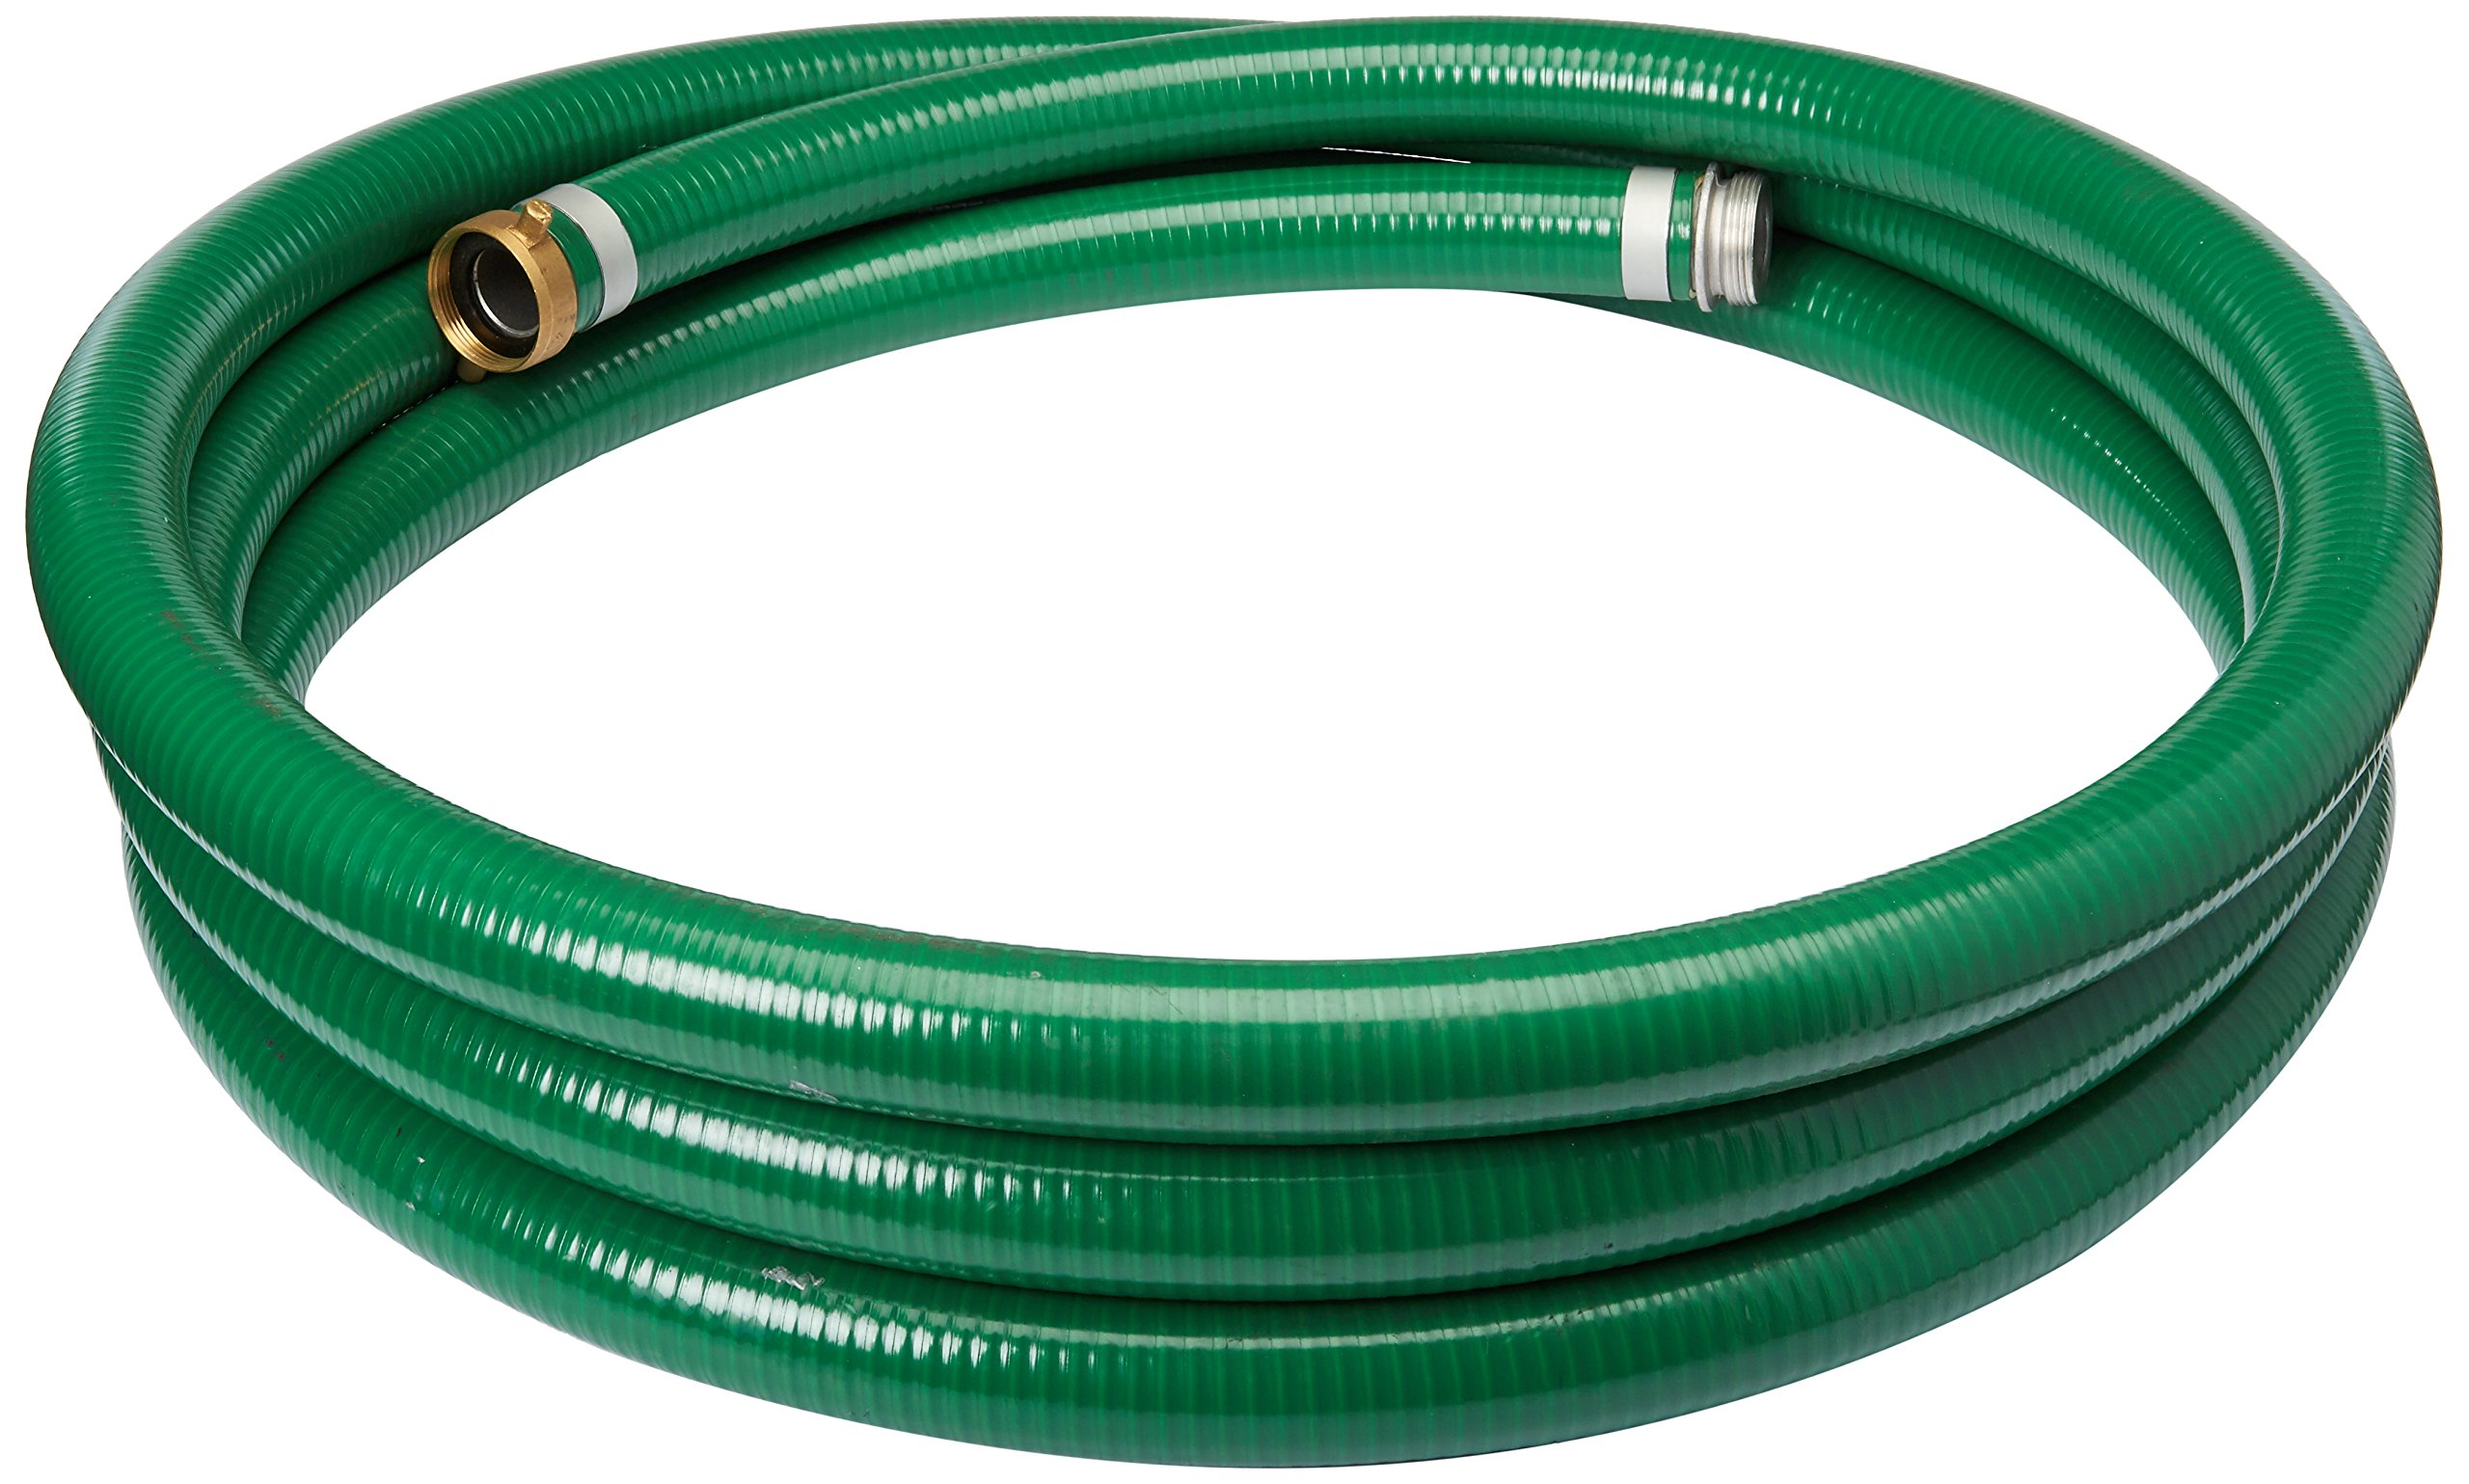 Apache 98128010 1-1/2'' x 20' PVC Style G (Green) Suction Hose with Aluminum Pin Lug Fittings by Apache